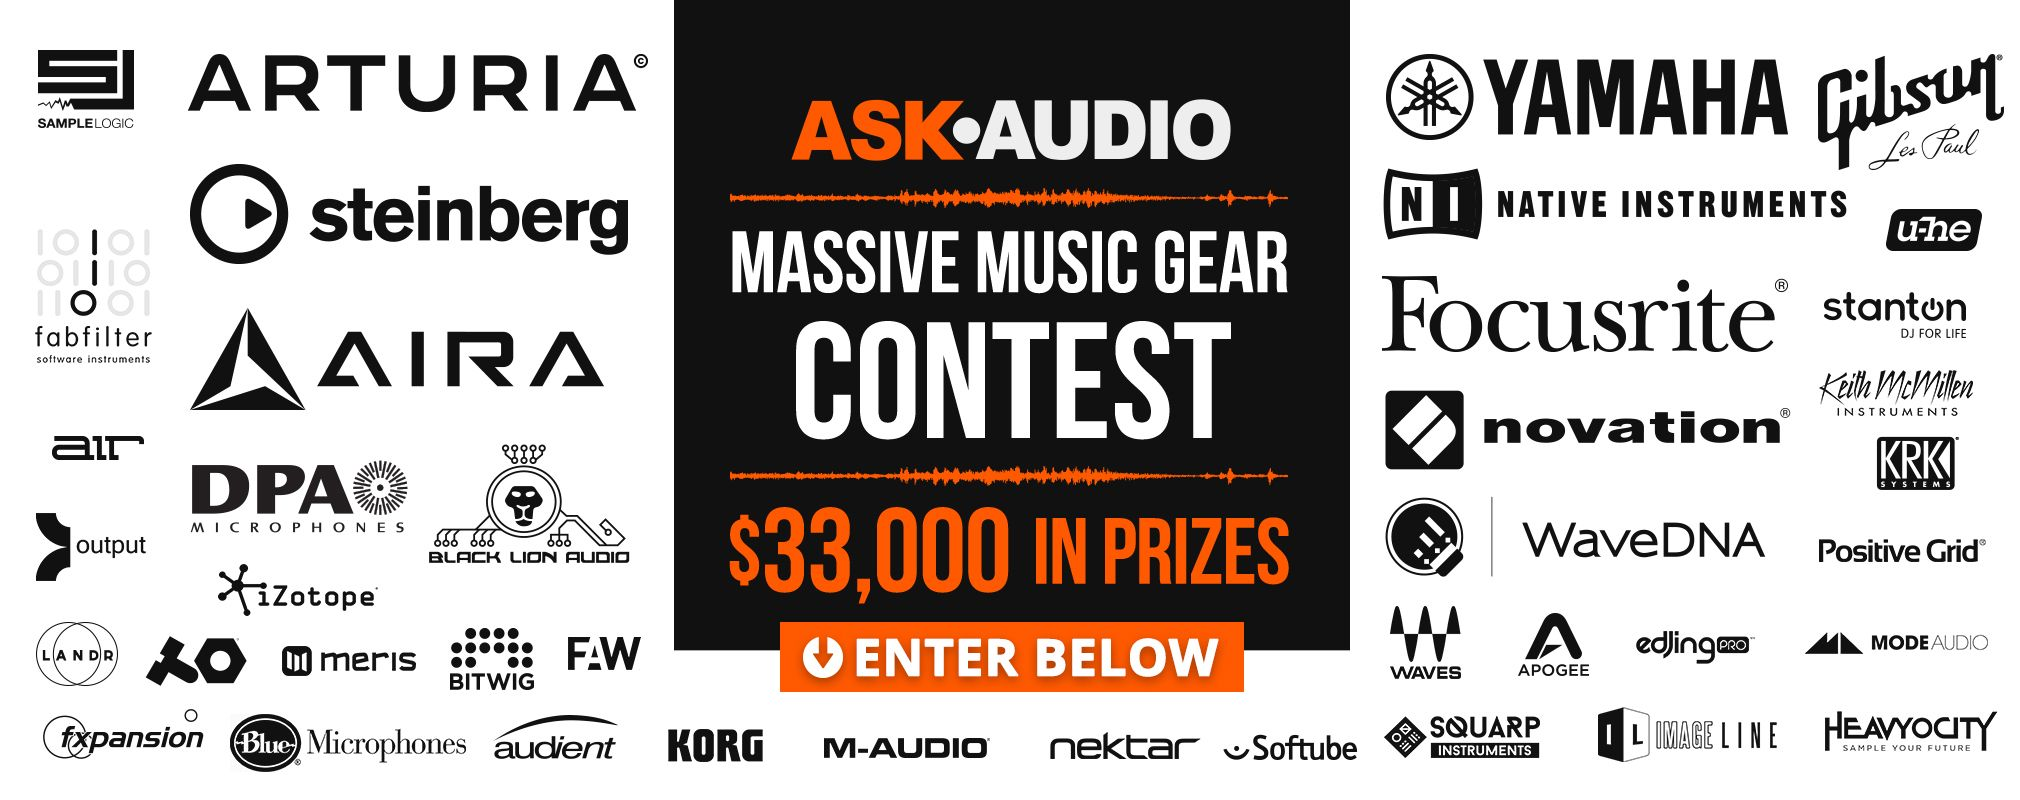 Ask-Audio-Launch-Contest